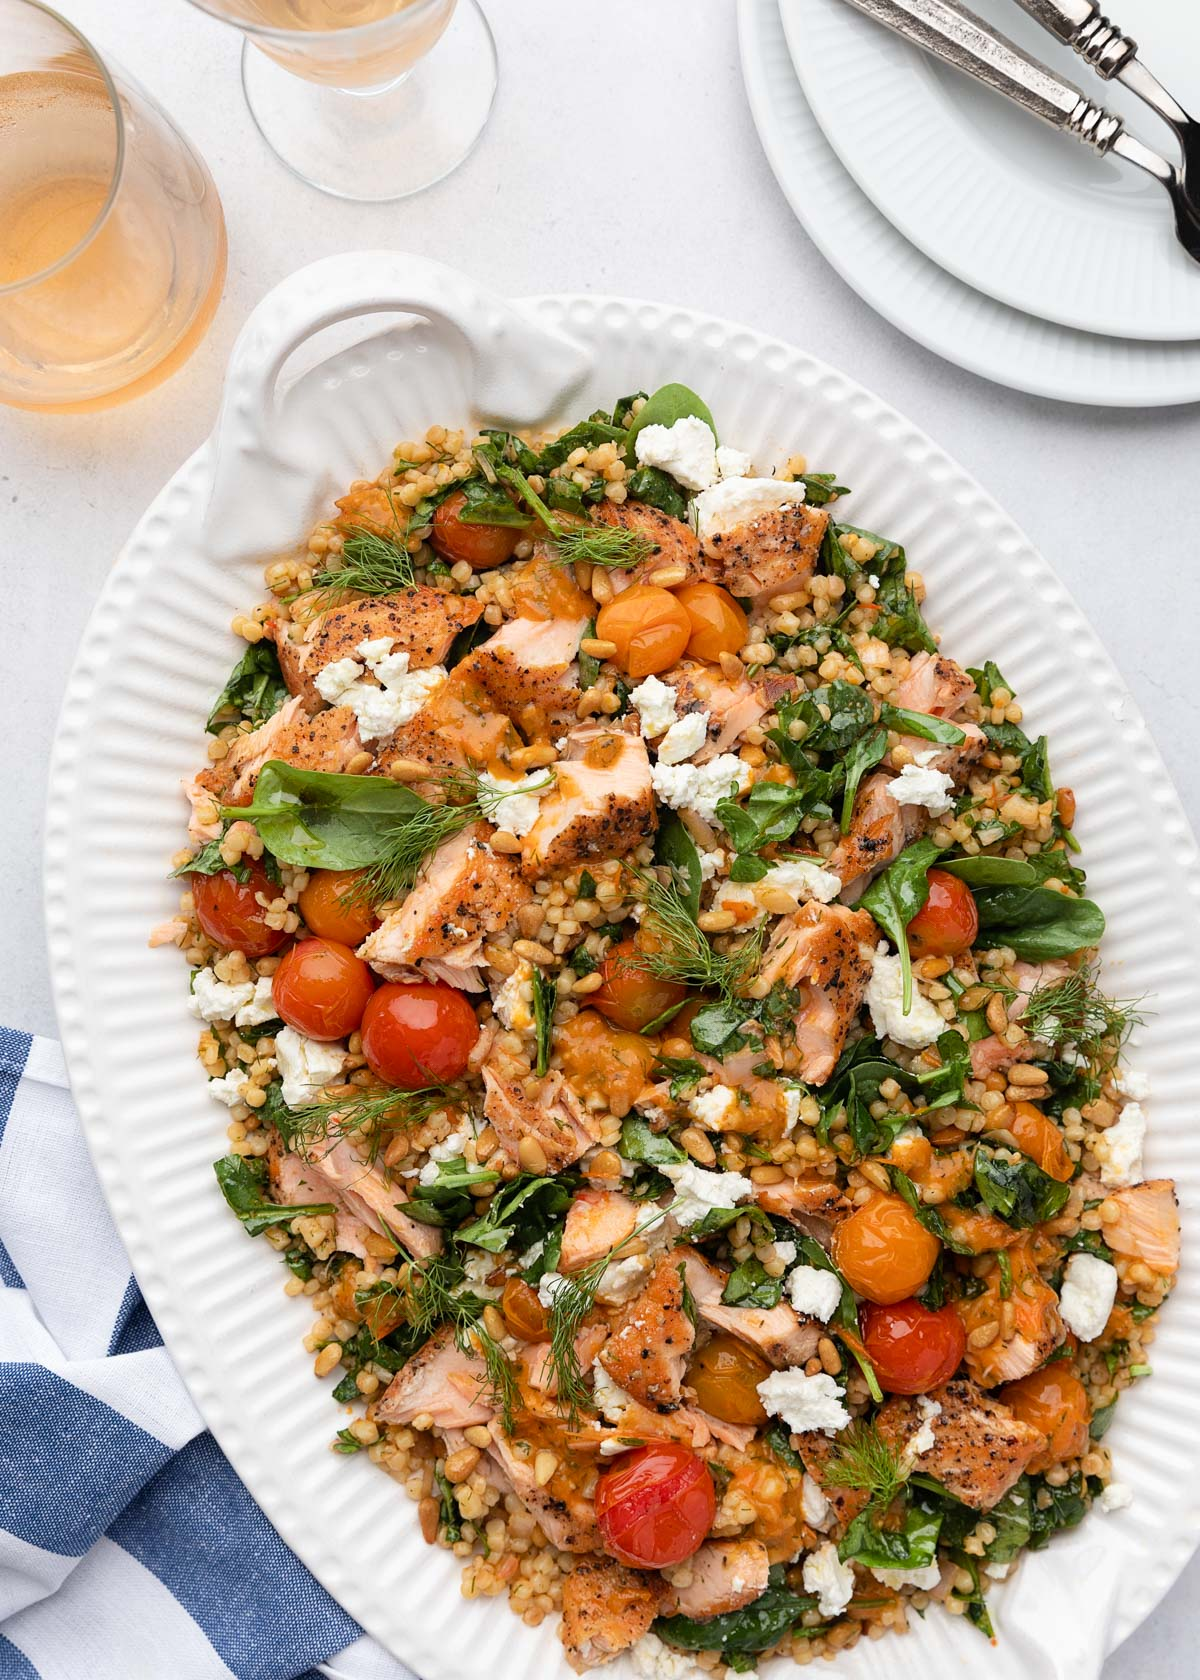 salmon and couscous salad on a white platter next to a blue and white striped napkin